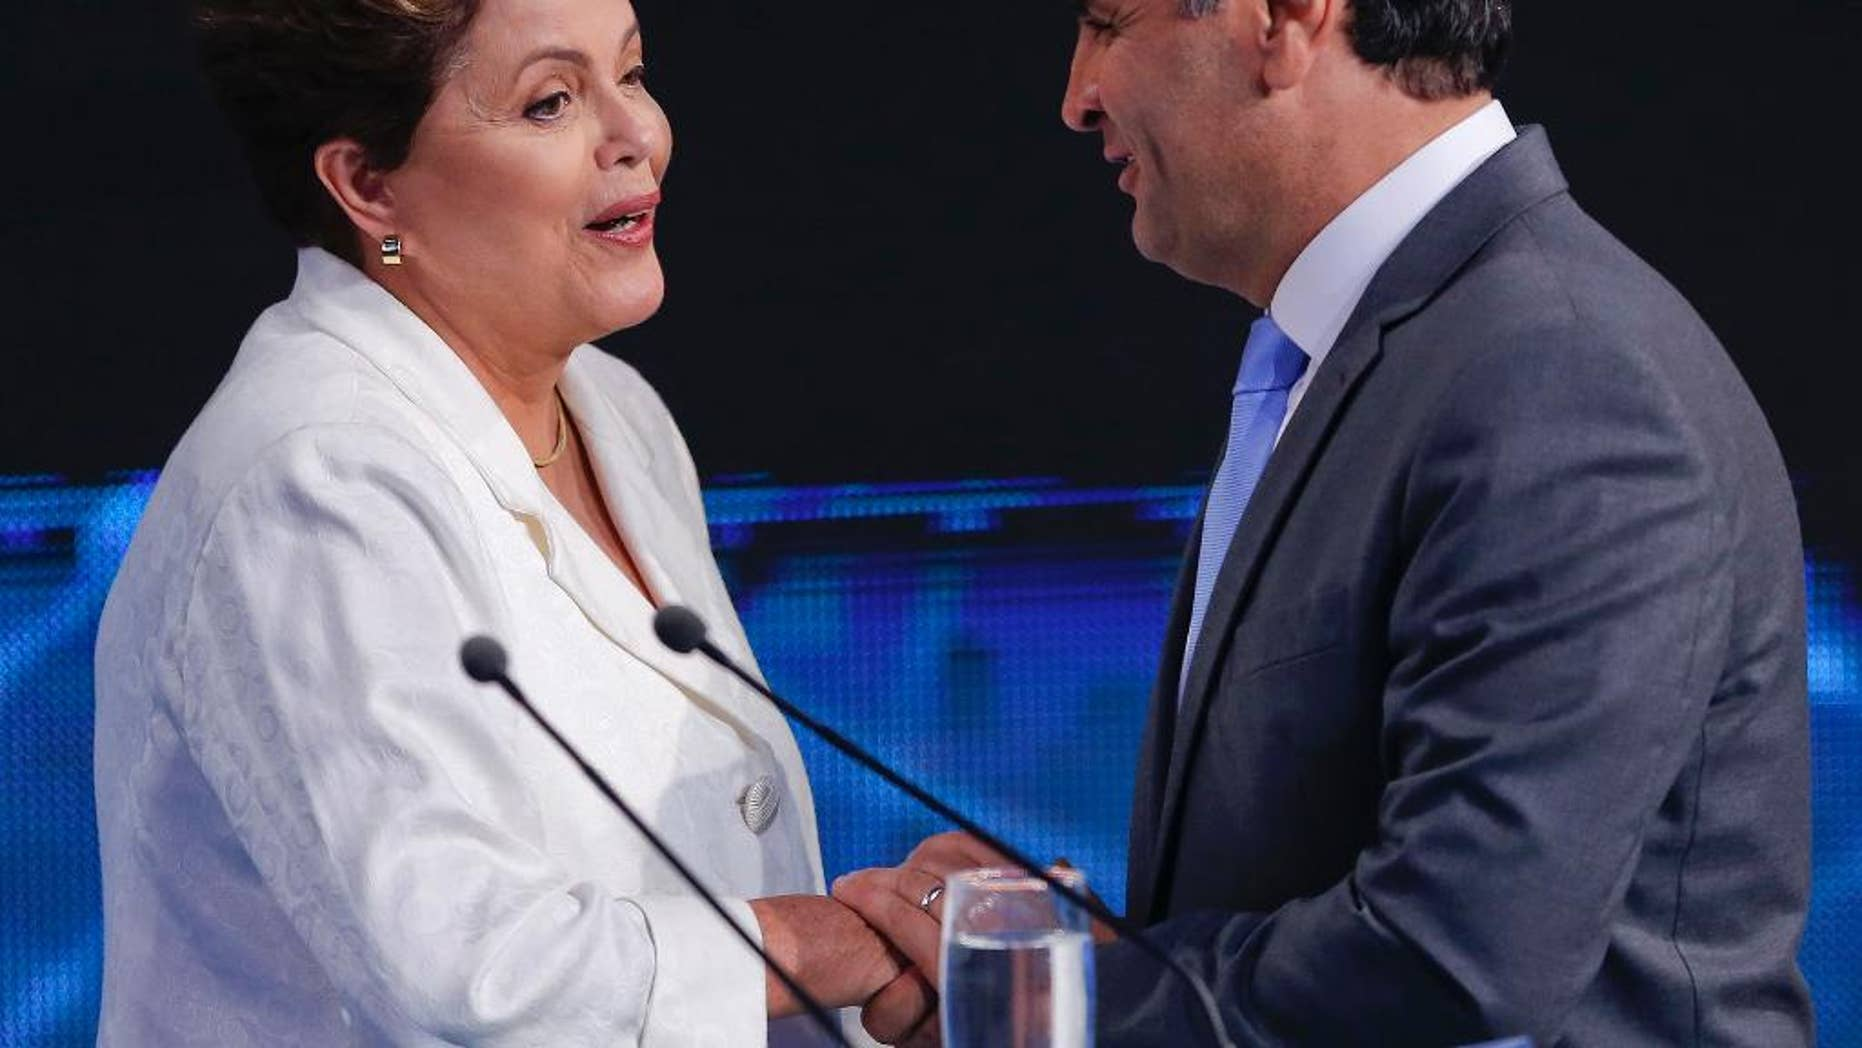 Brazil's President Dilma Rousseff, presidential candidate for re-election of the Workers Party, PT , left, shakes hands with Aecio Neves, presidential candidate of the Brazilian Social Democracy Party, PSDB, at the end of a presidential debate in Sao Paulo, Brazil, Tuesday, Oct. 14, 2014. Rousseff and Neves will face each other in a presidential runoff on Oct. 26. (AP Photo/Andre Penner)